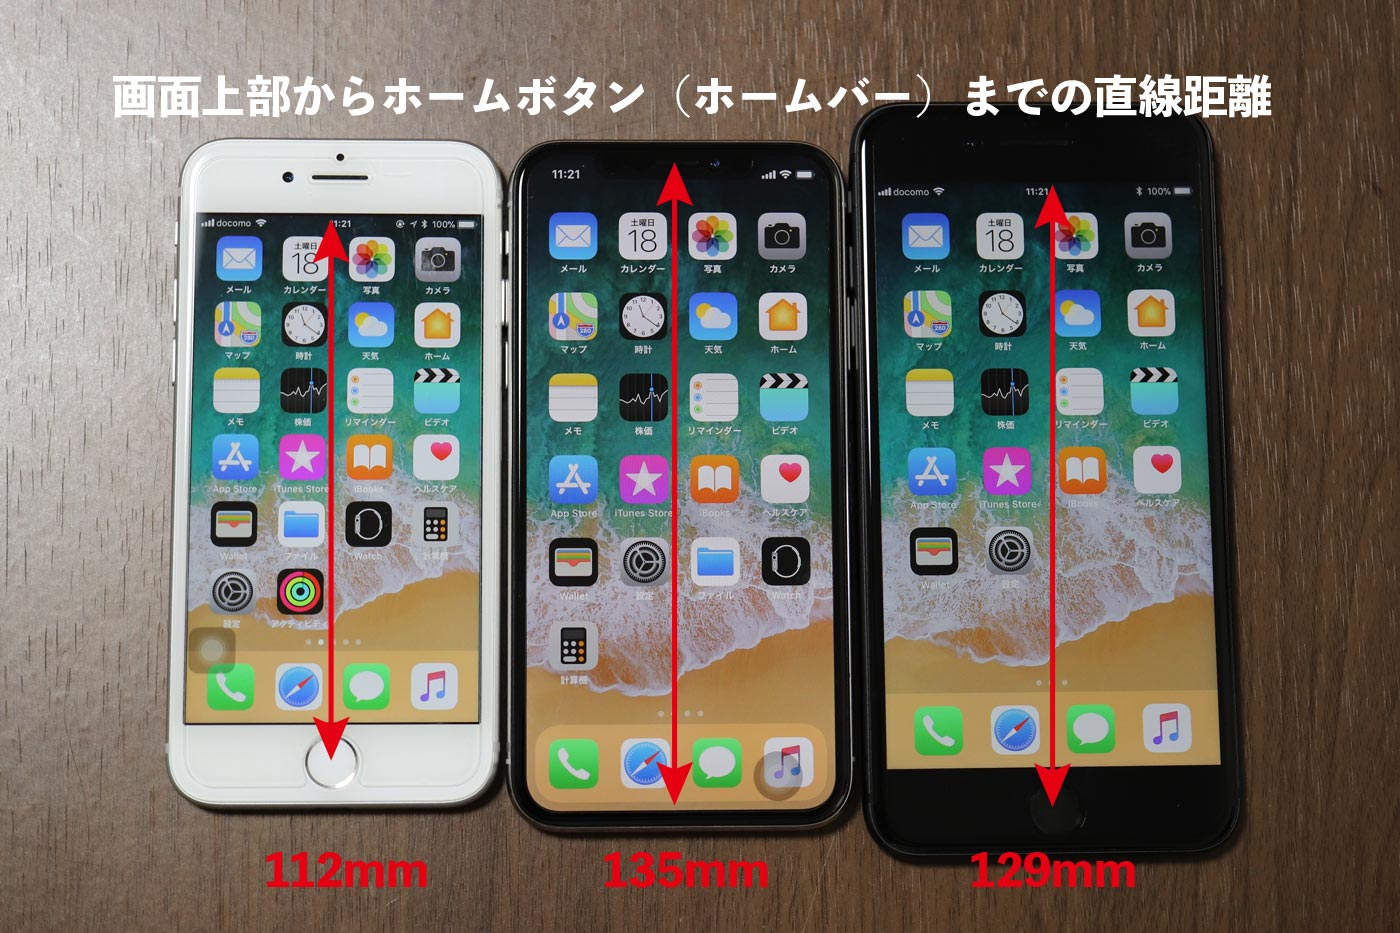 iPhone8 vs iPhoneX vs iPhone8 Plus 画面の長さ